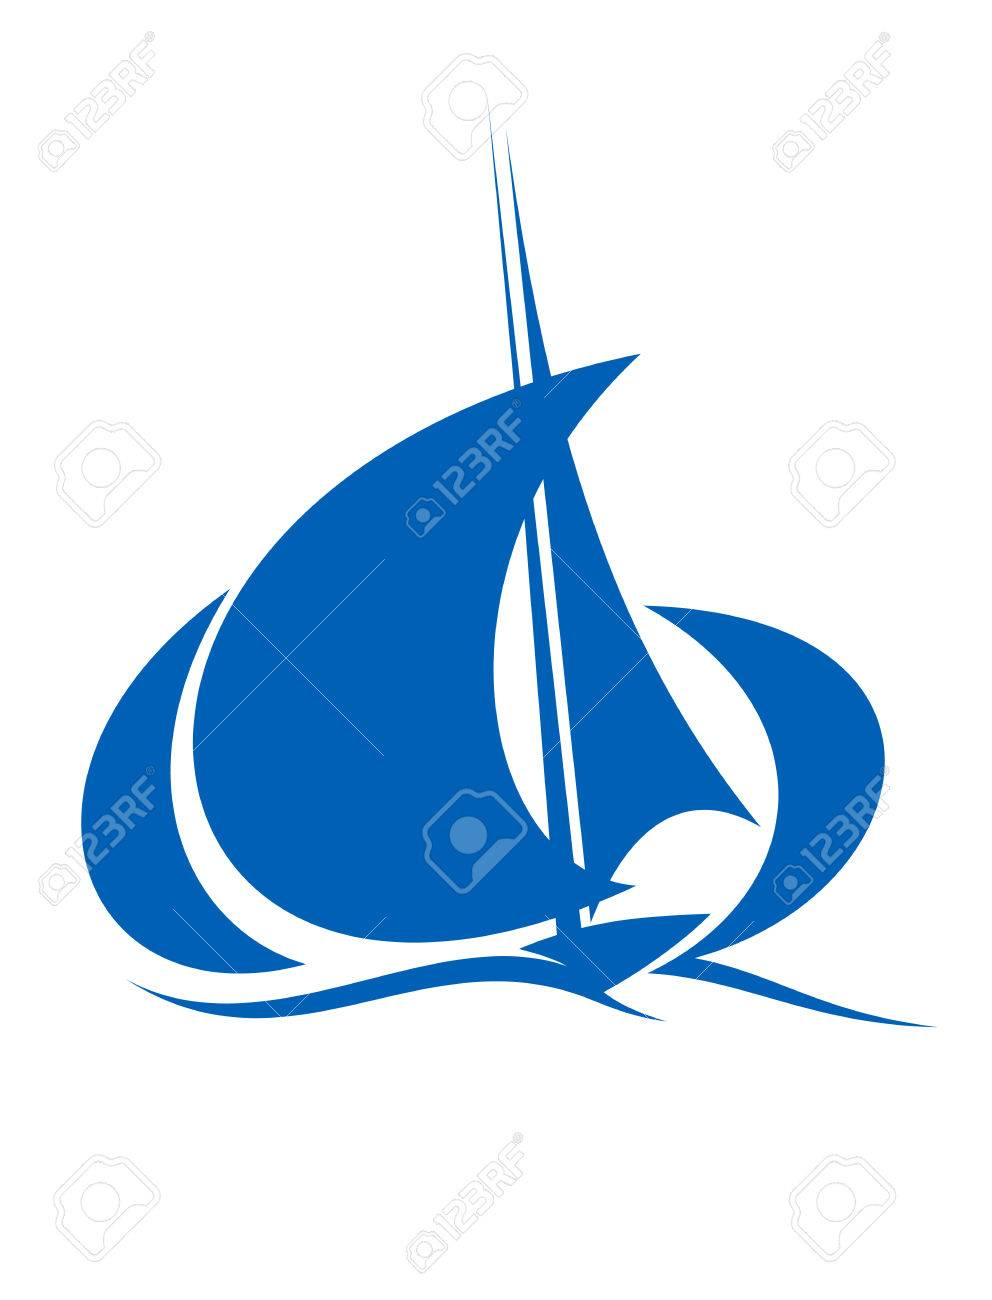 992x1300 Stylized Silhouette Of Blue Yacht Sailing The Ocean Waves